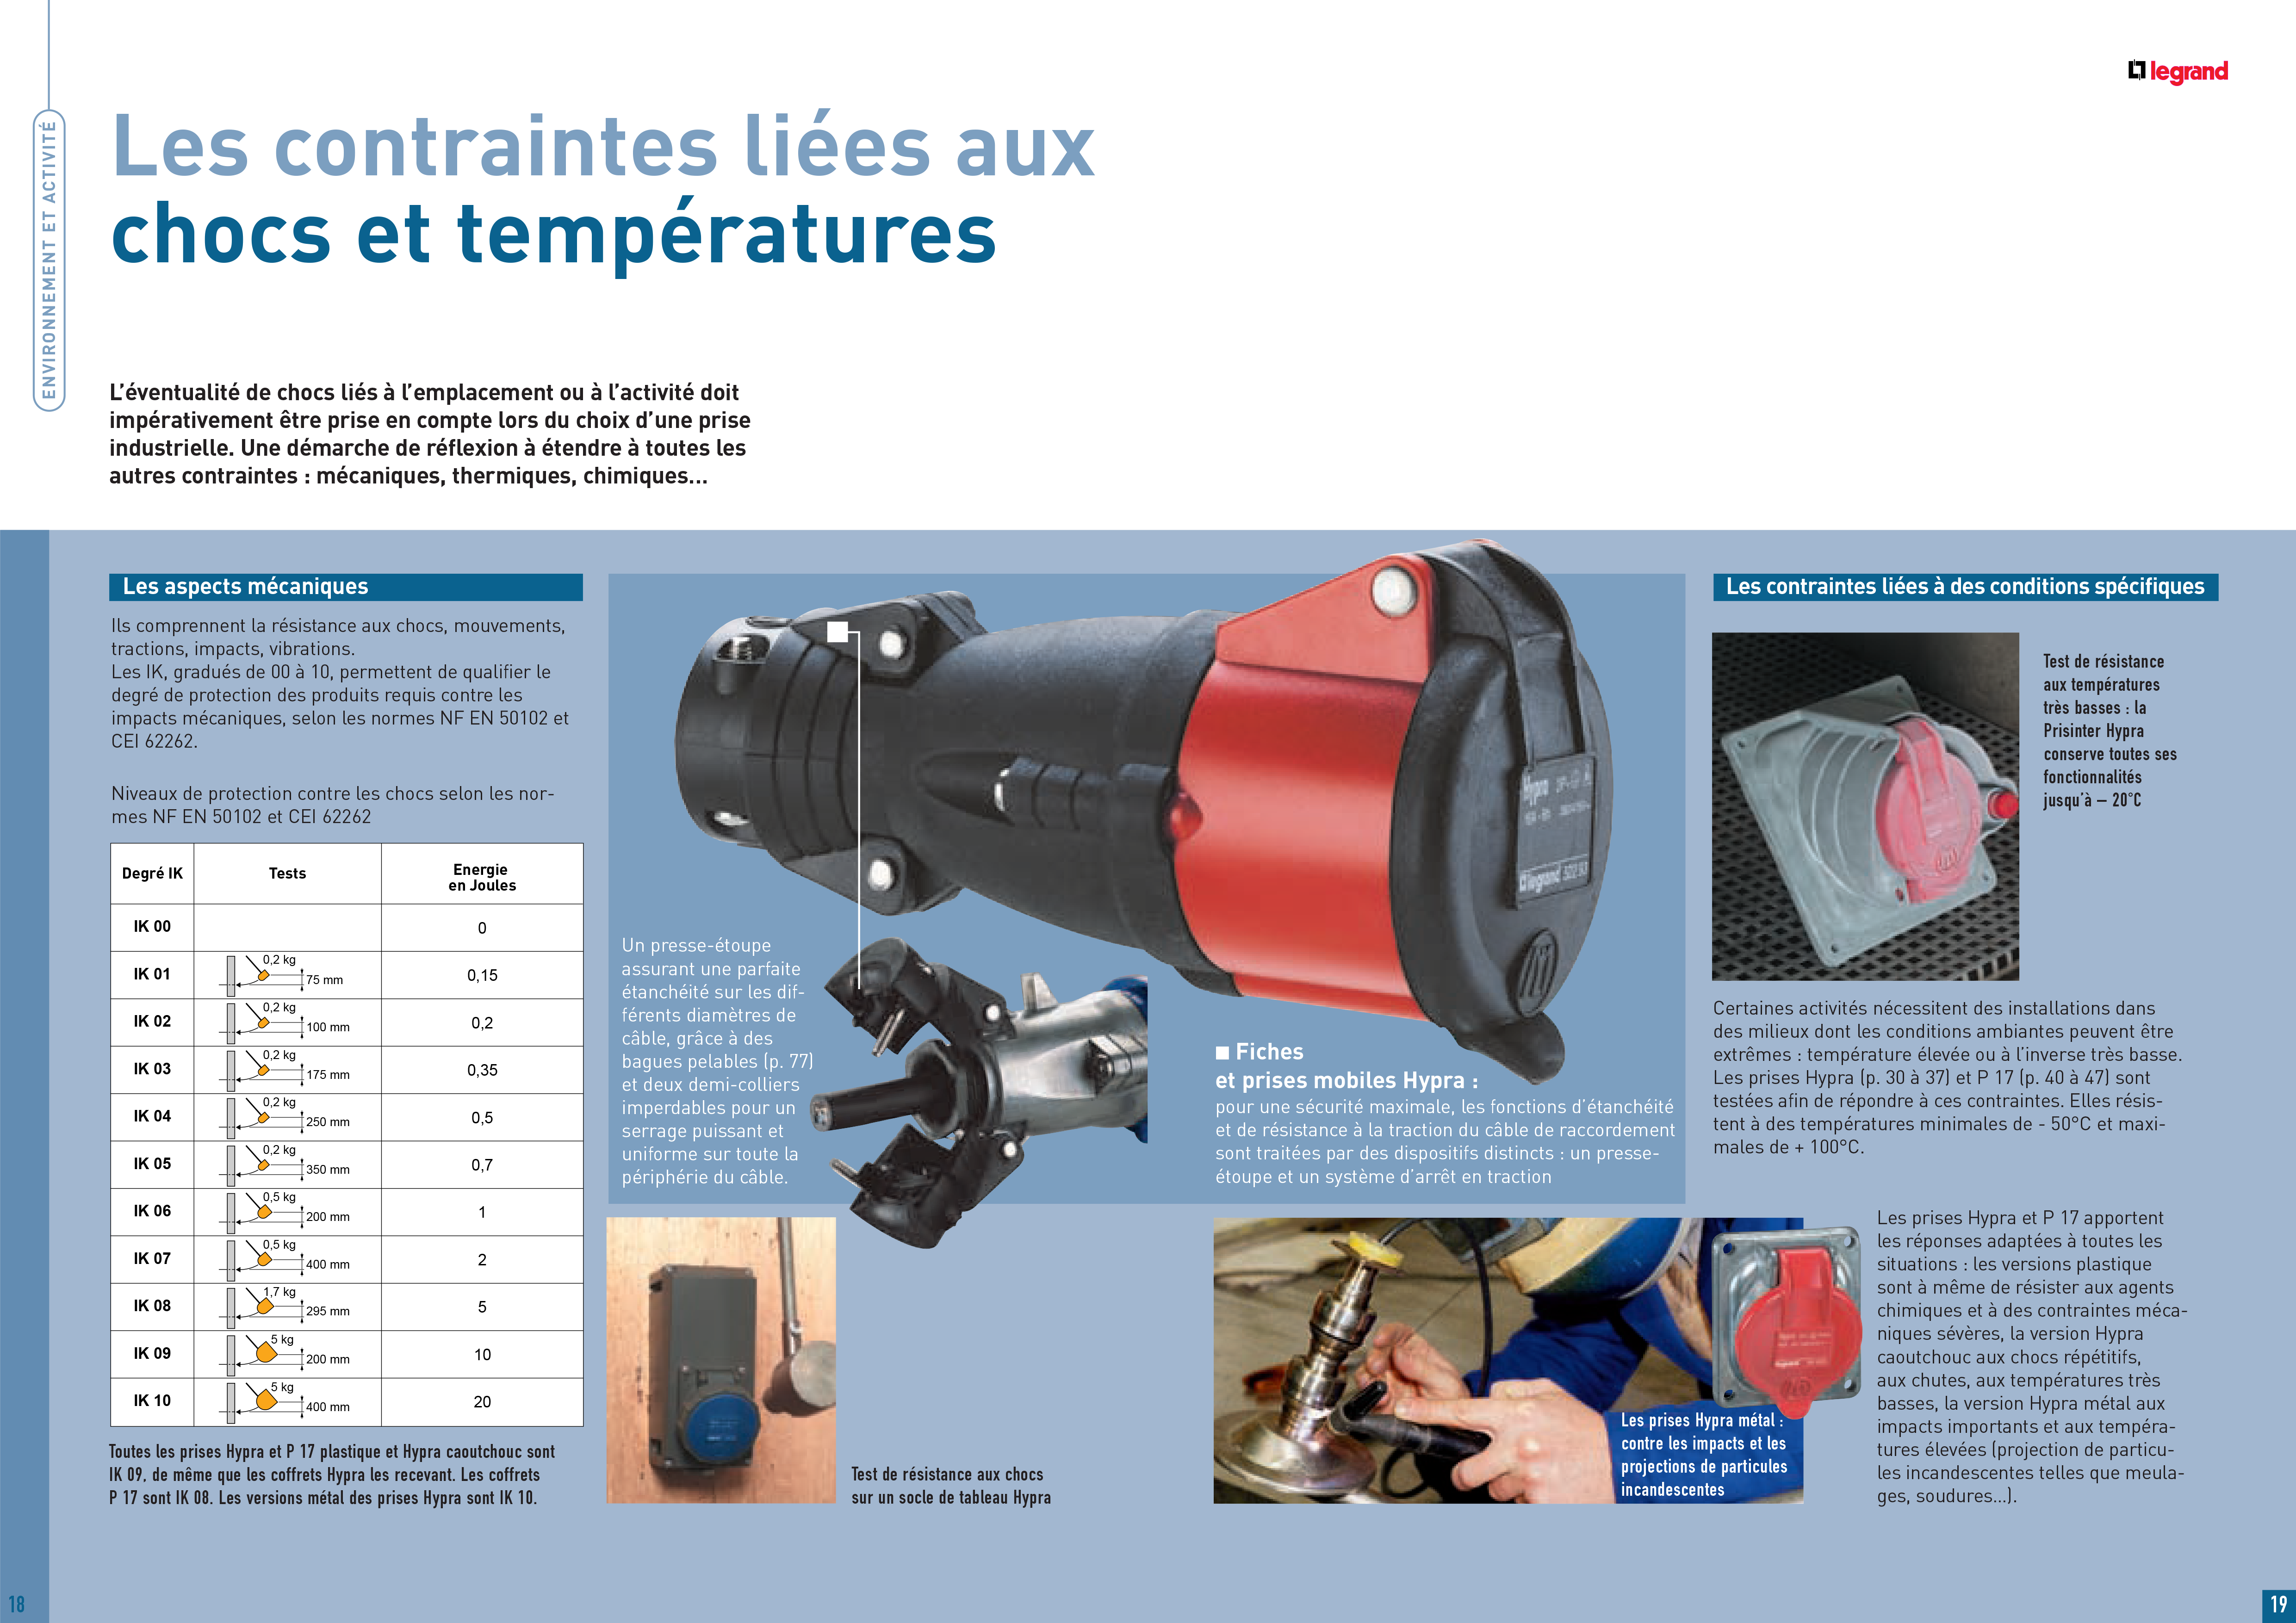 temperature fiche industrielle